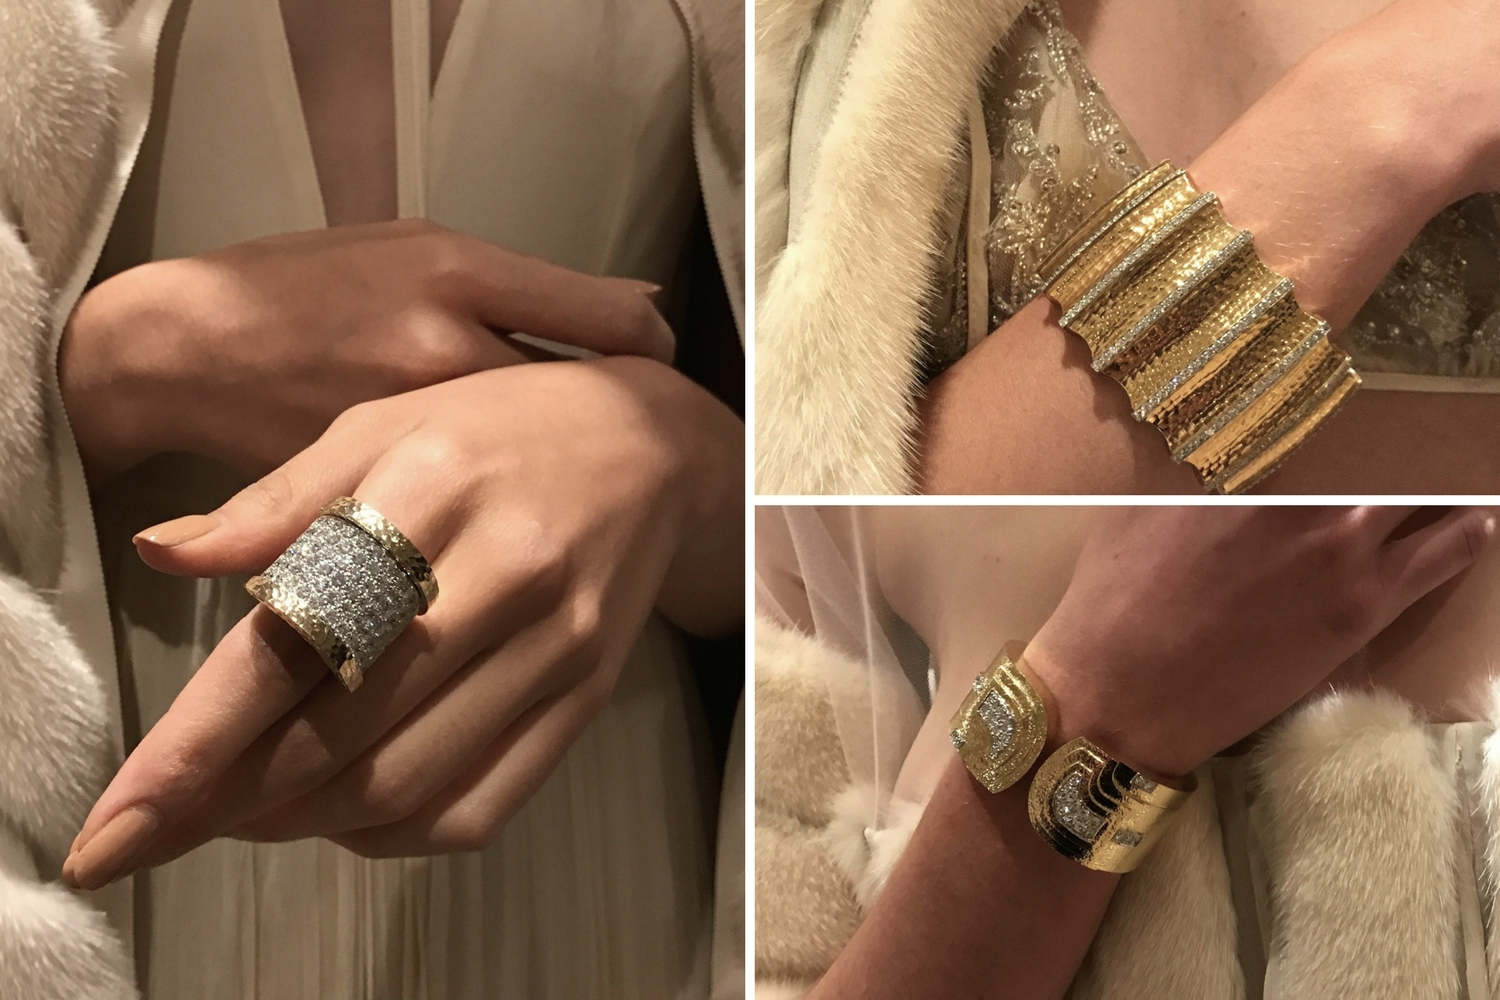 Bold gold accents glittering with diamonds